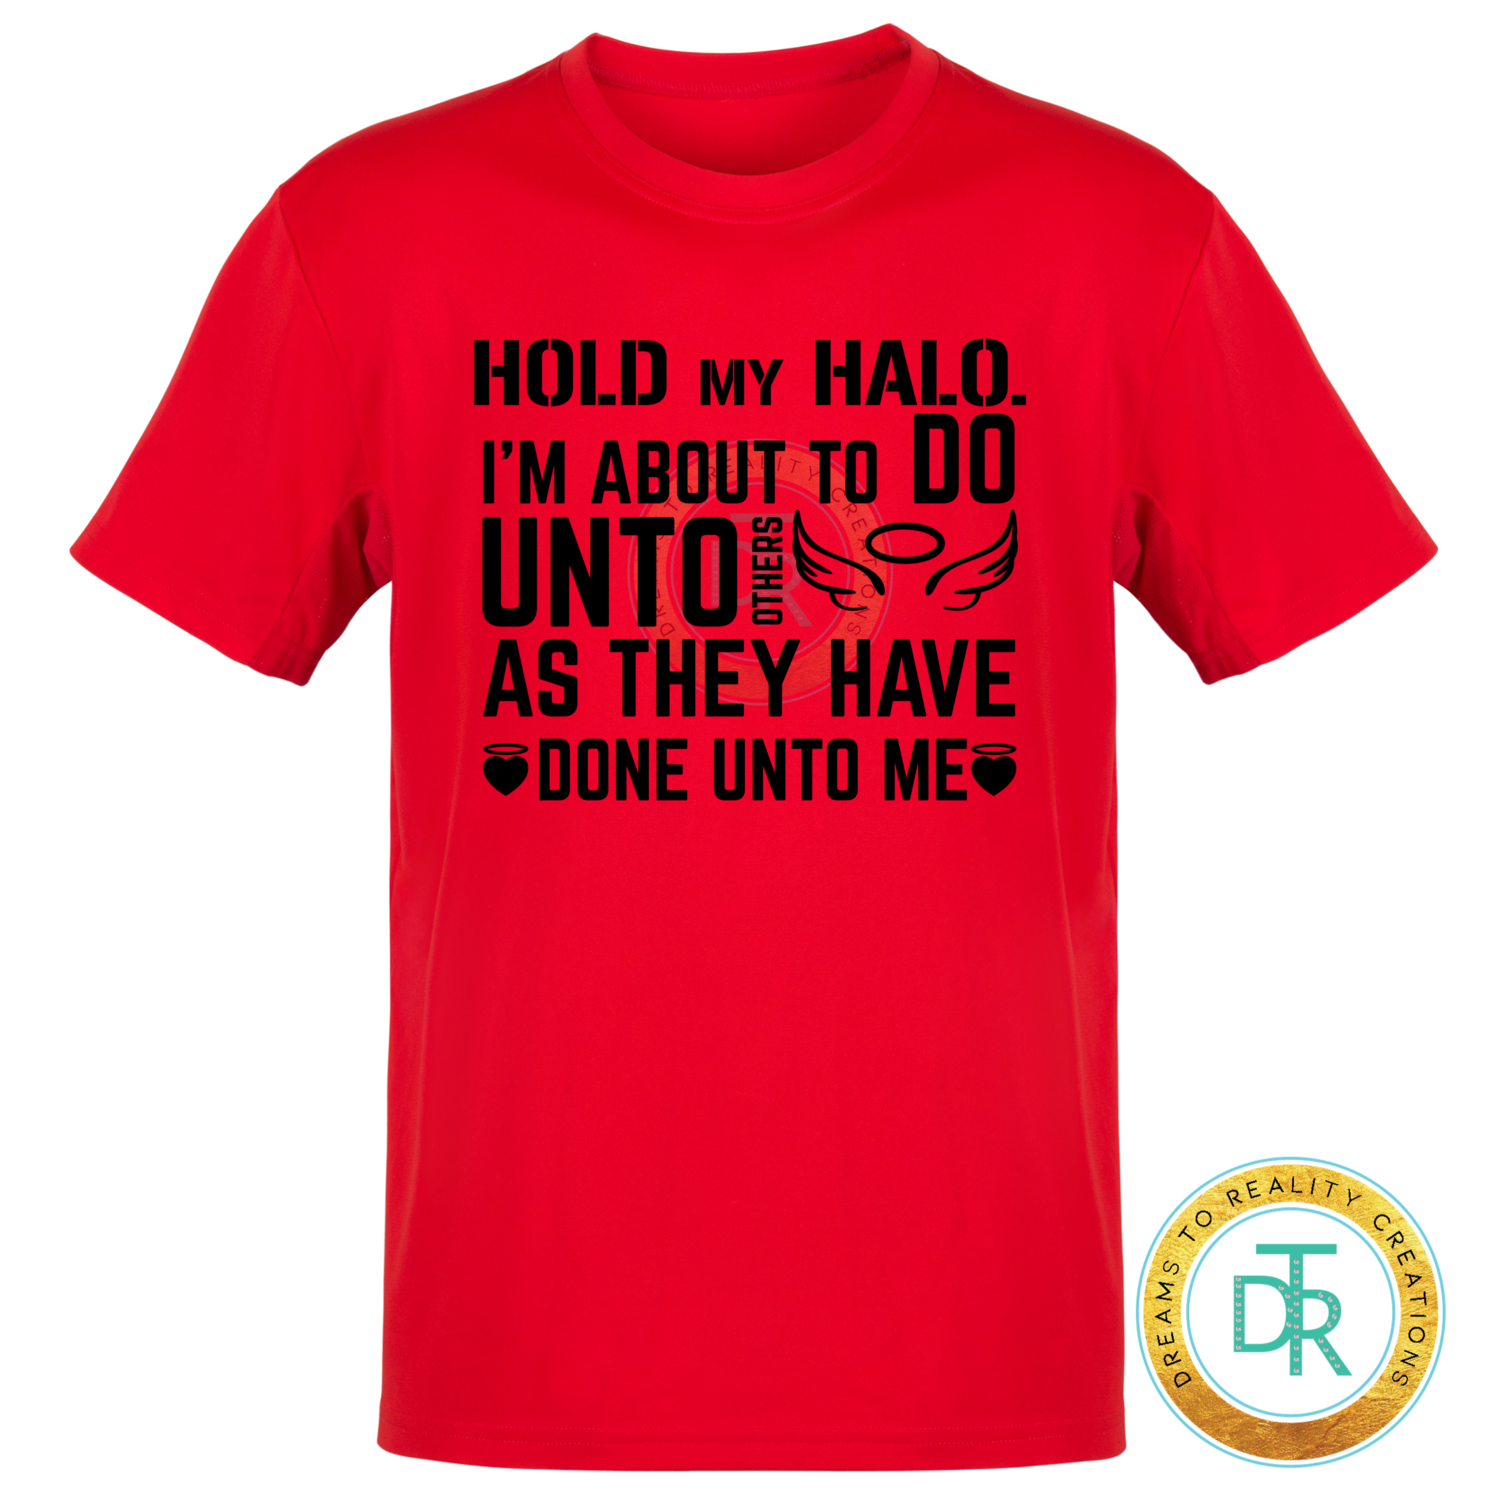 Hold My Halo T-Shirt